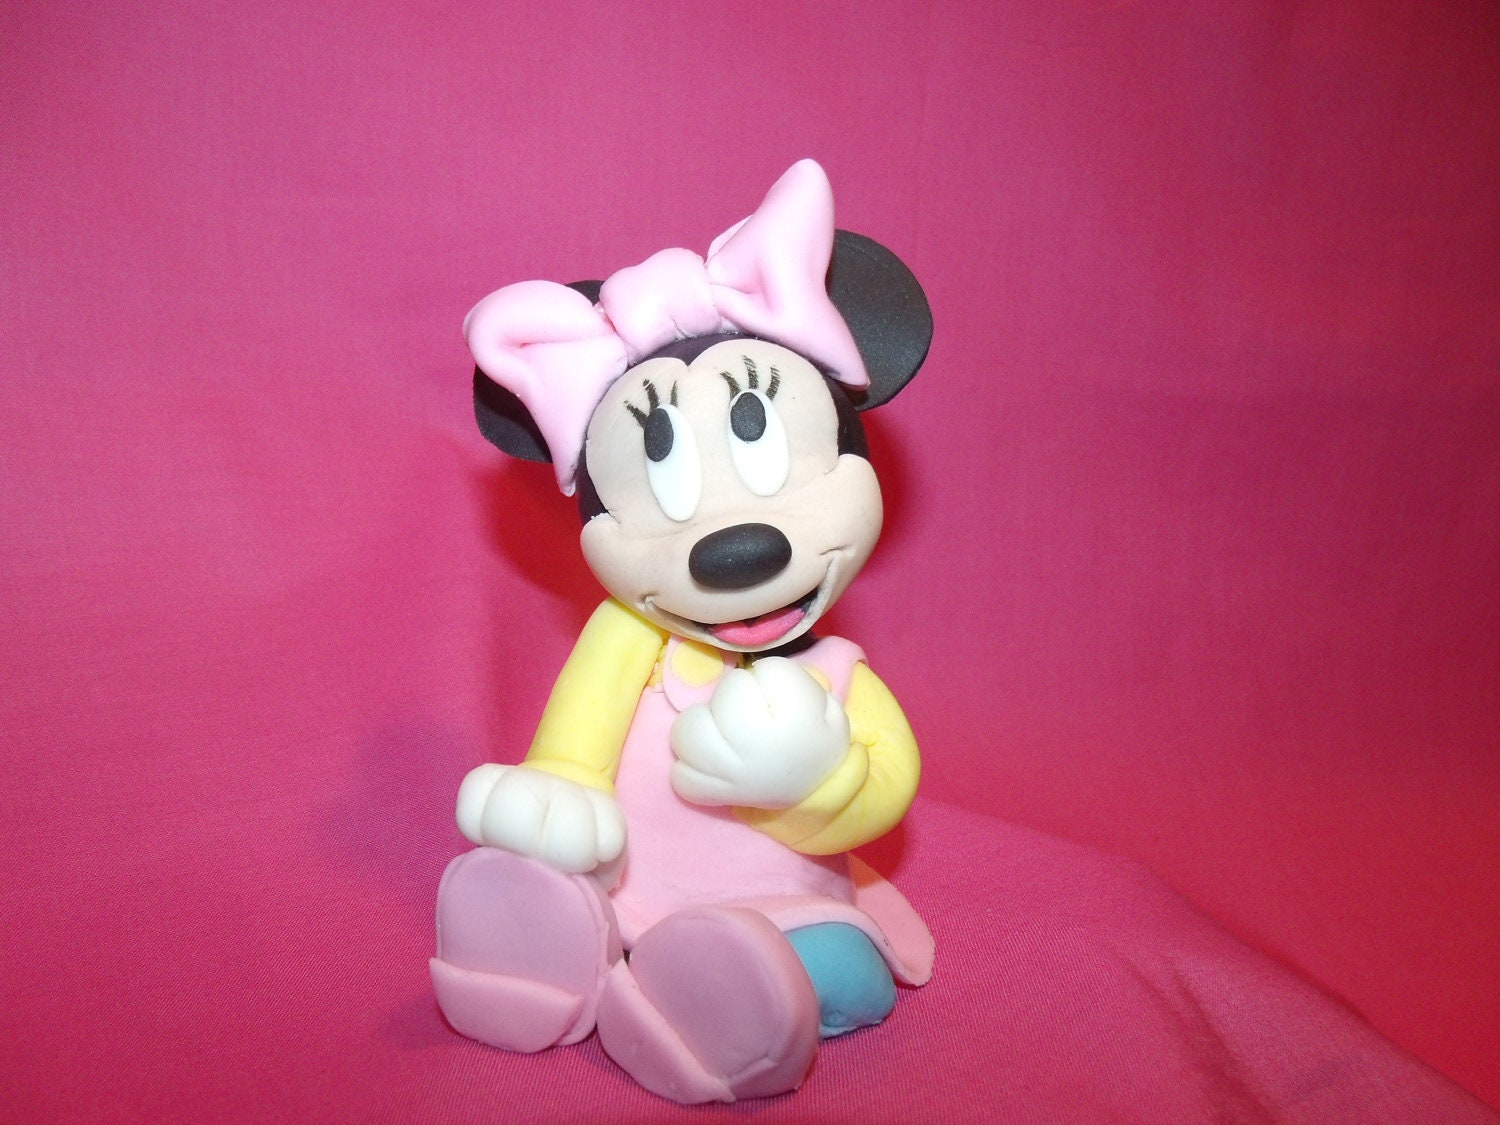 Baby Mickey Mouse Edible Cake Decorations Edible Cupcake Toppers 1st Birthday Cake